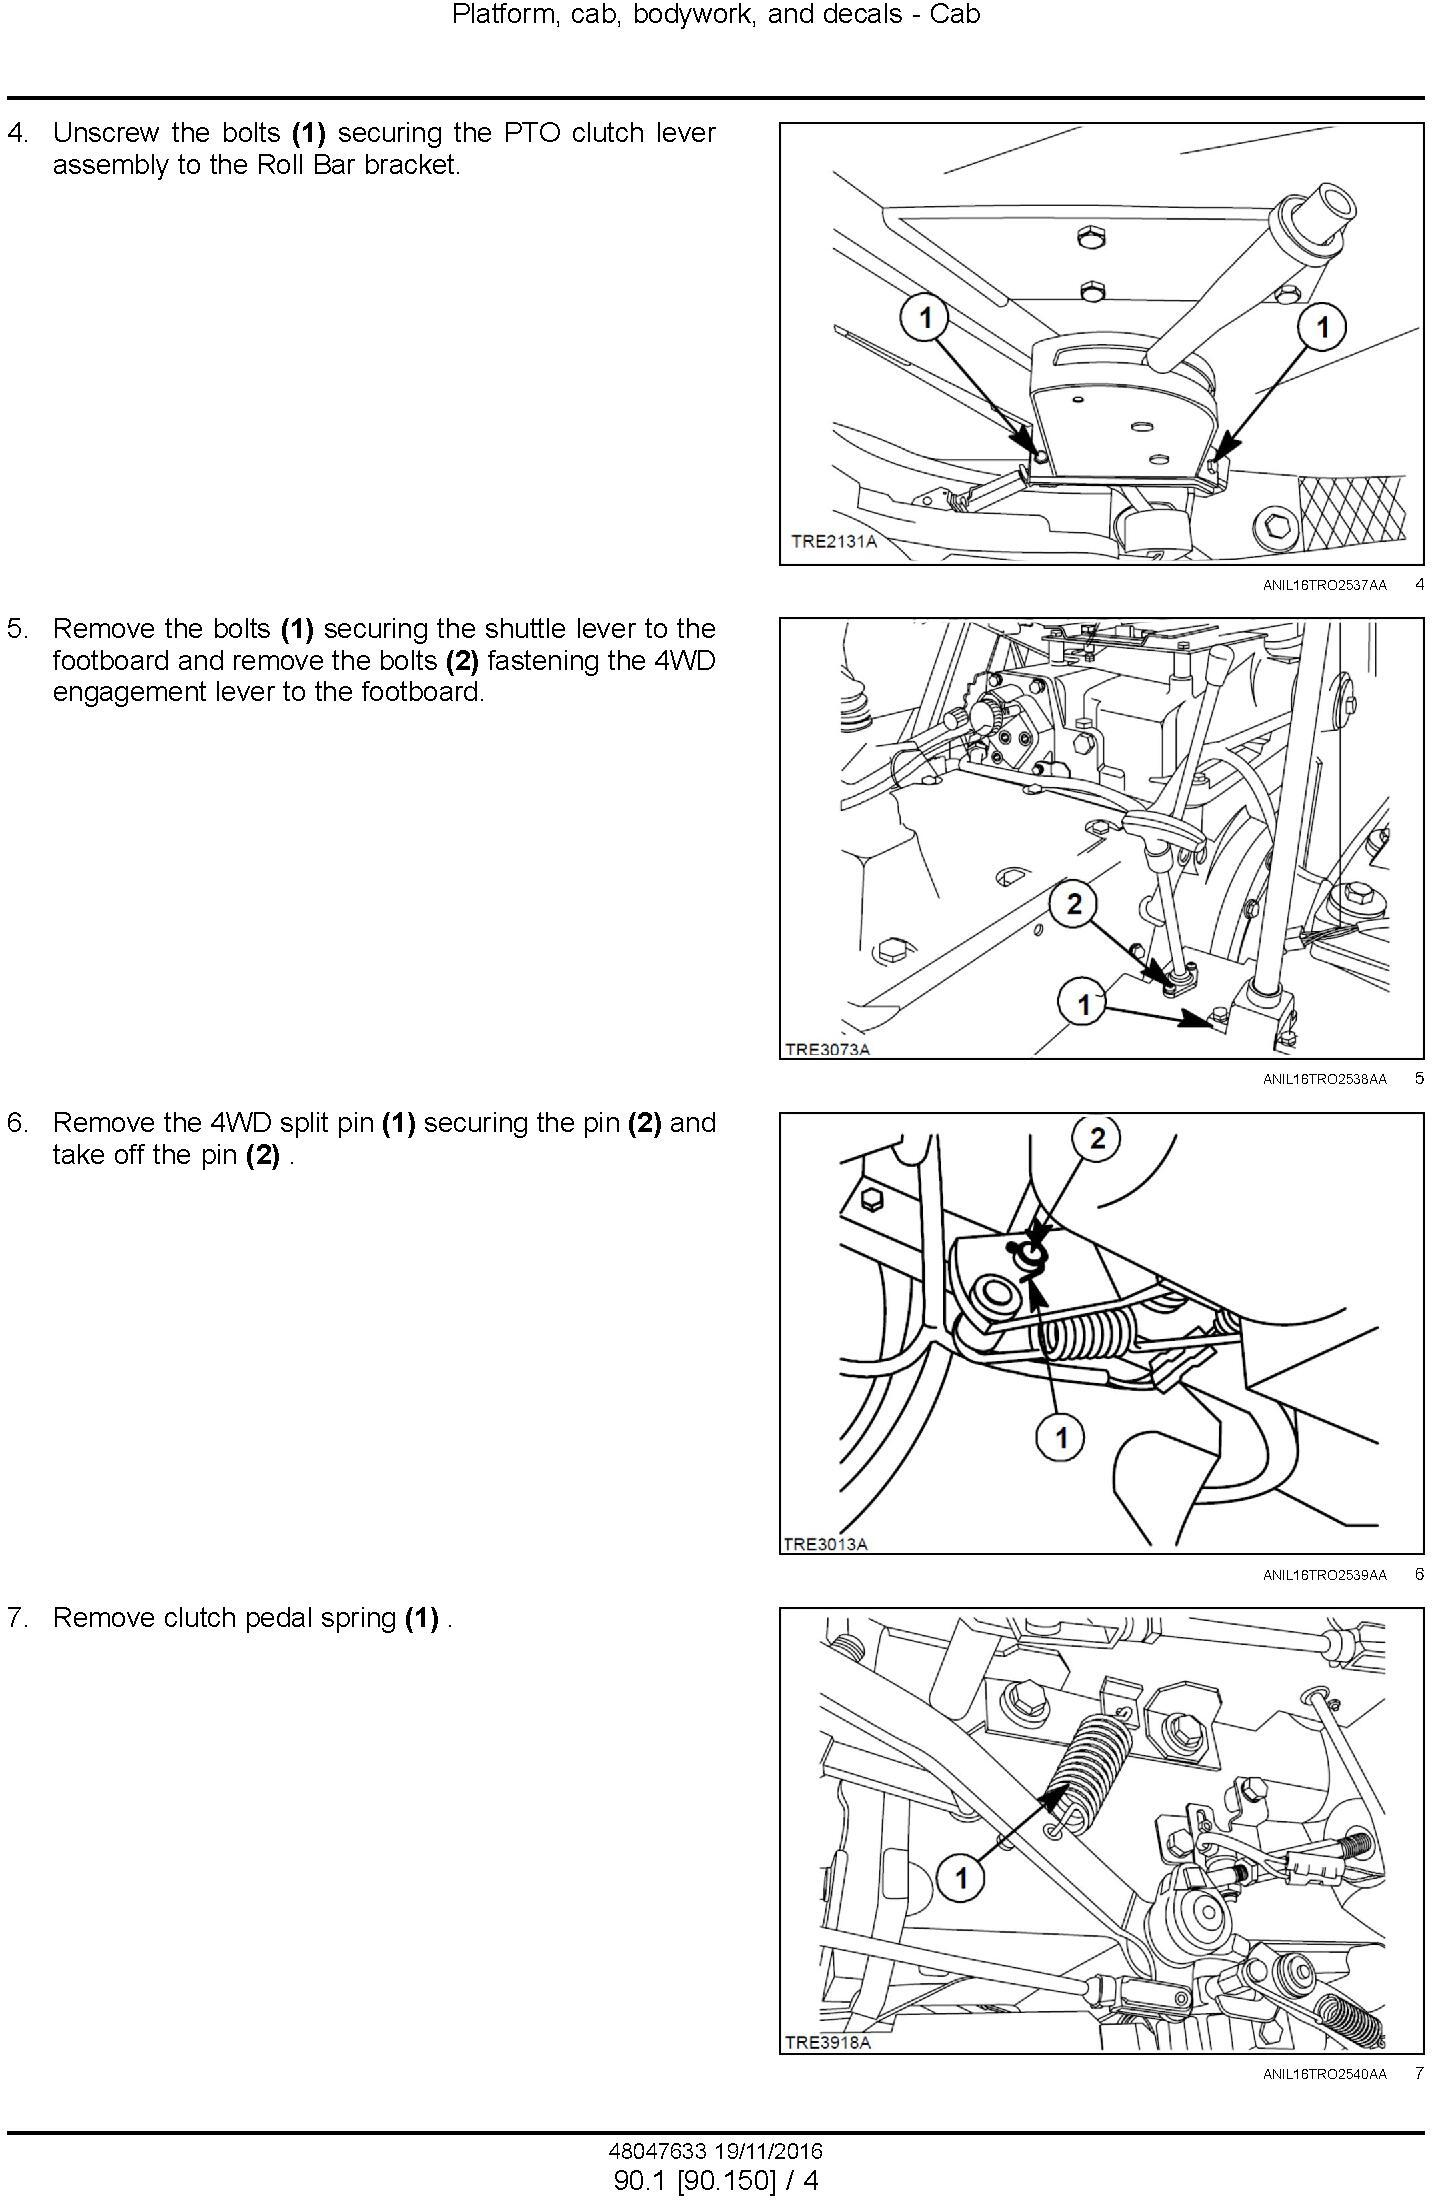 New Holland TD60, TD70, TD80, TD90, TD95 Straddle Tractor Service Manual (Asia, Africa) - 1